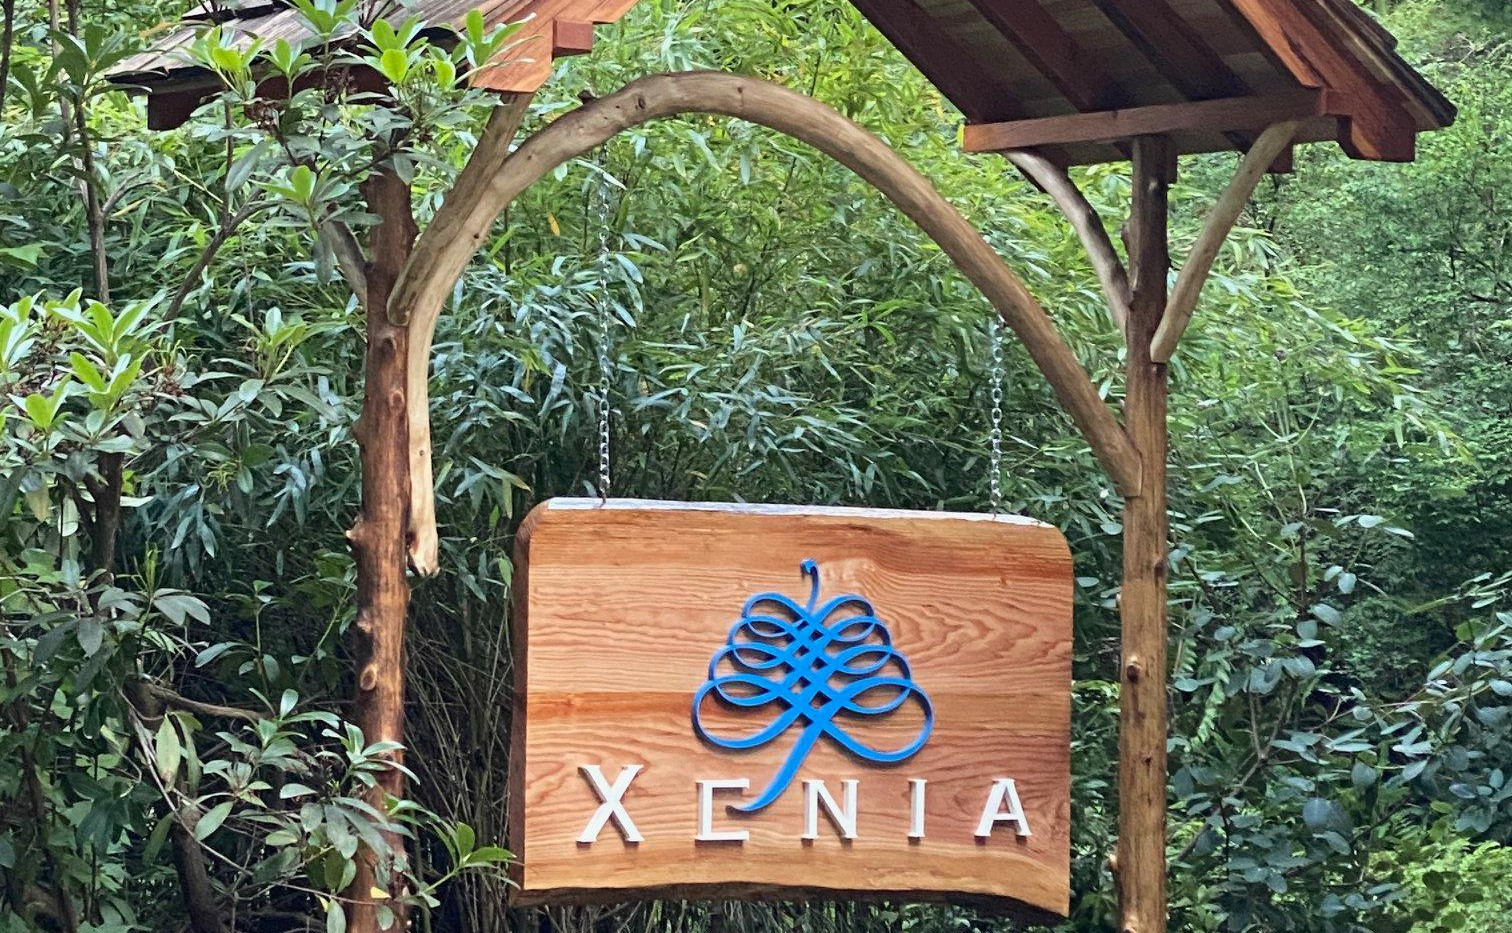 xenia entrance sign.jpg